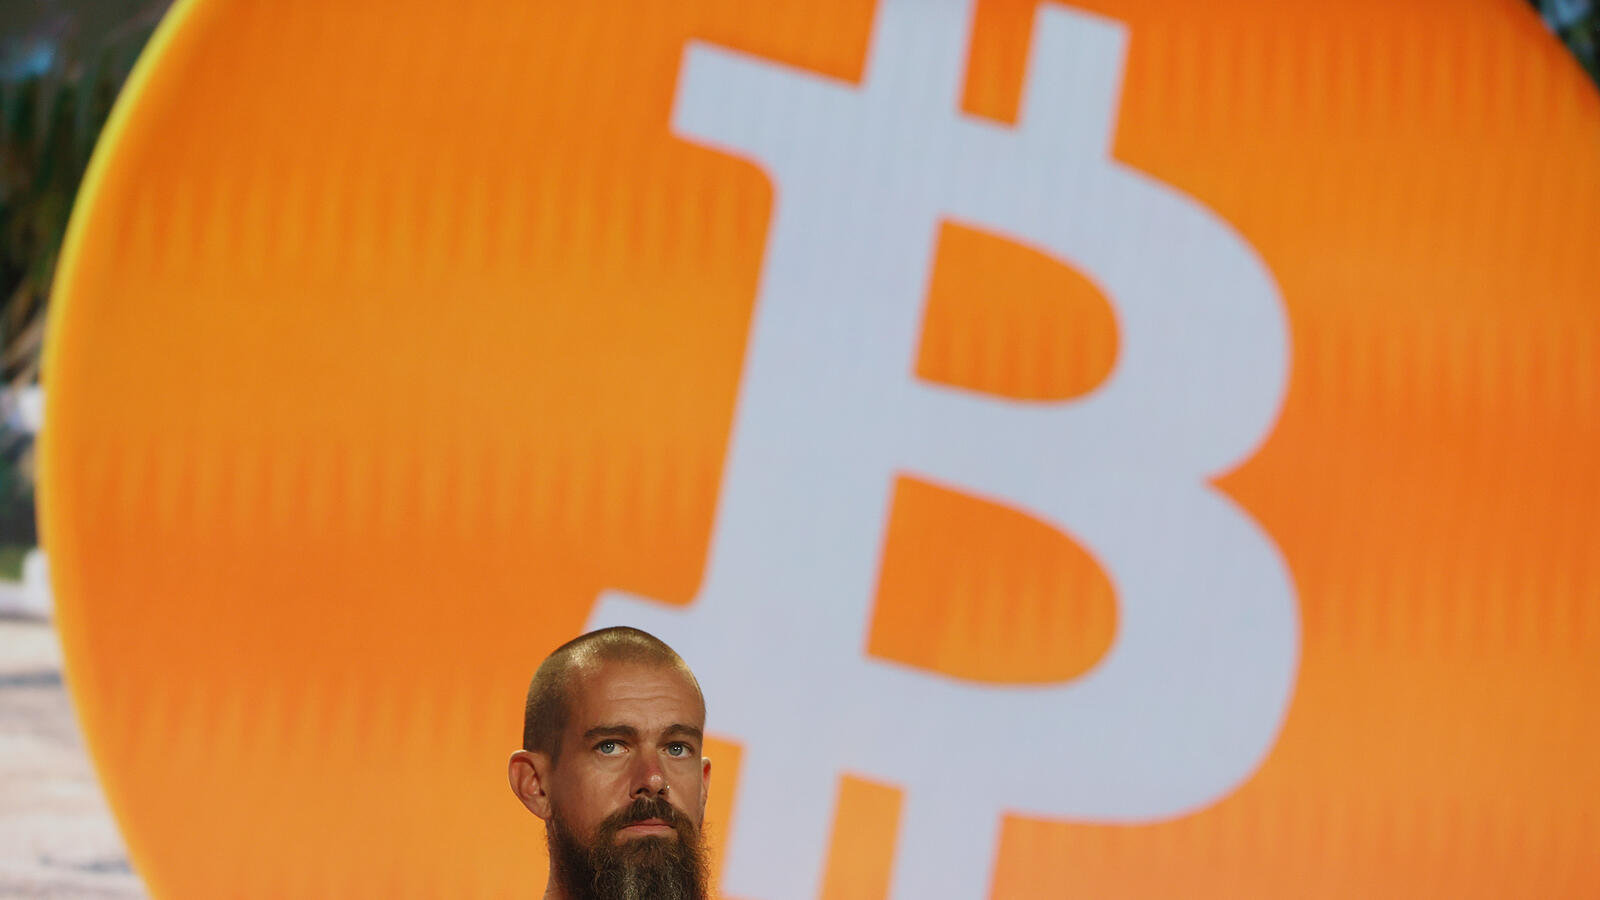 Twitter CEO Jack Dorsey Hopes Bitcoin Leads To World Peace